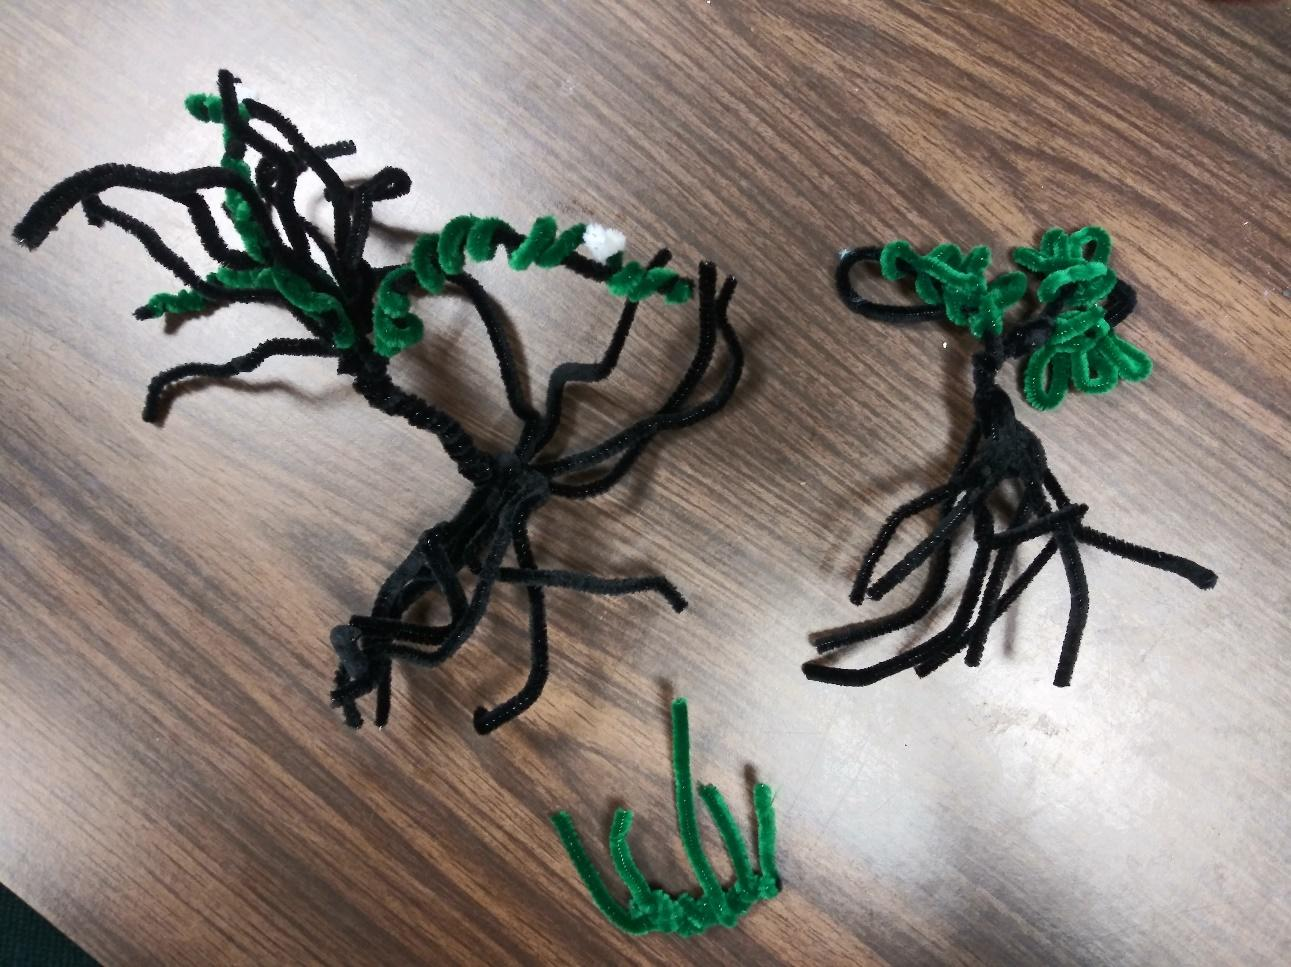 Week Two: Plankton, Plants, & Pipe Cleaners! - Mangroves and seagrass made from pipe cleaners.